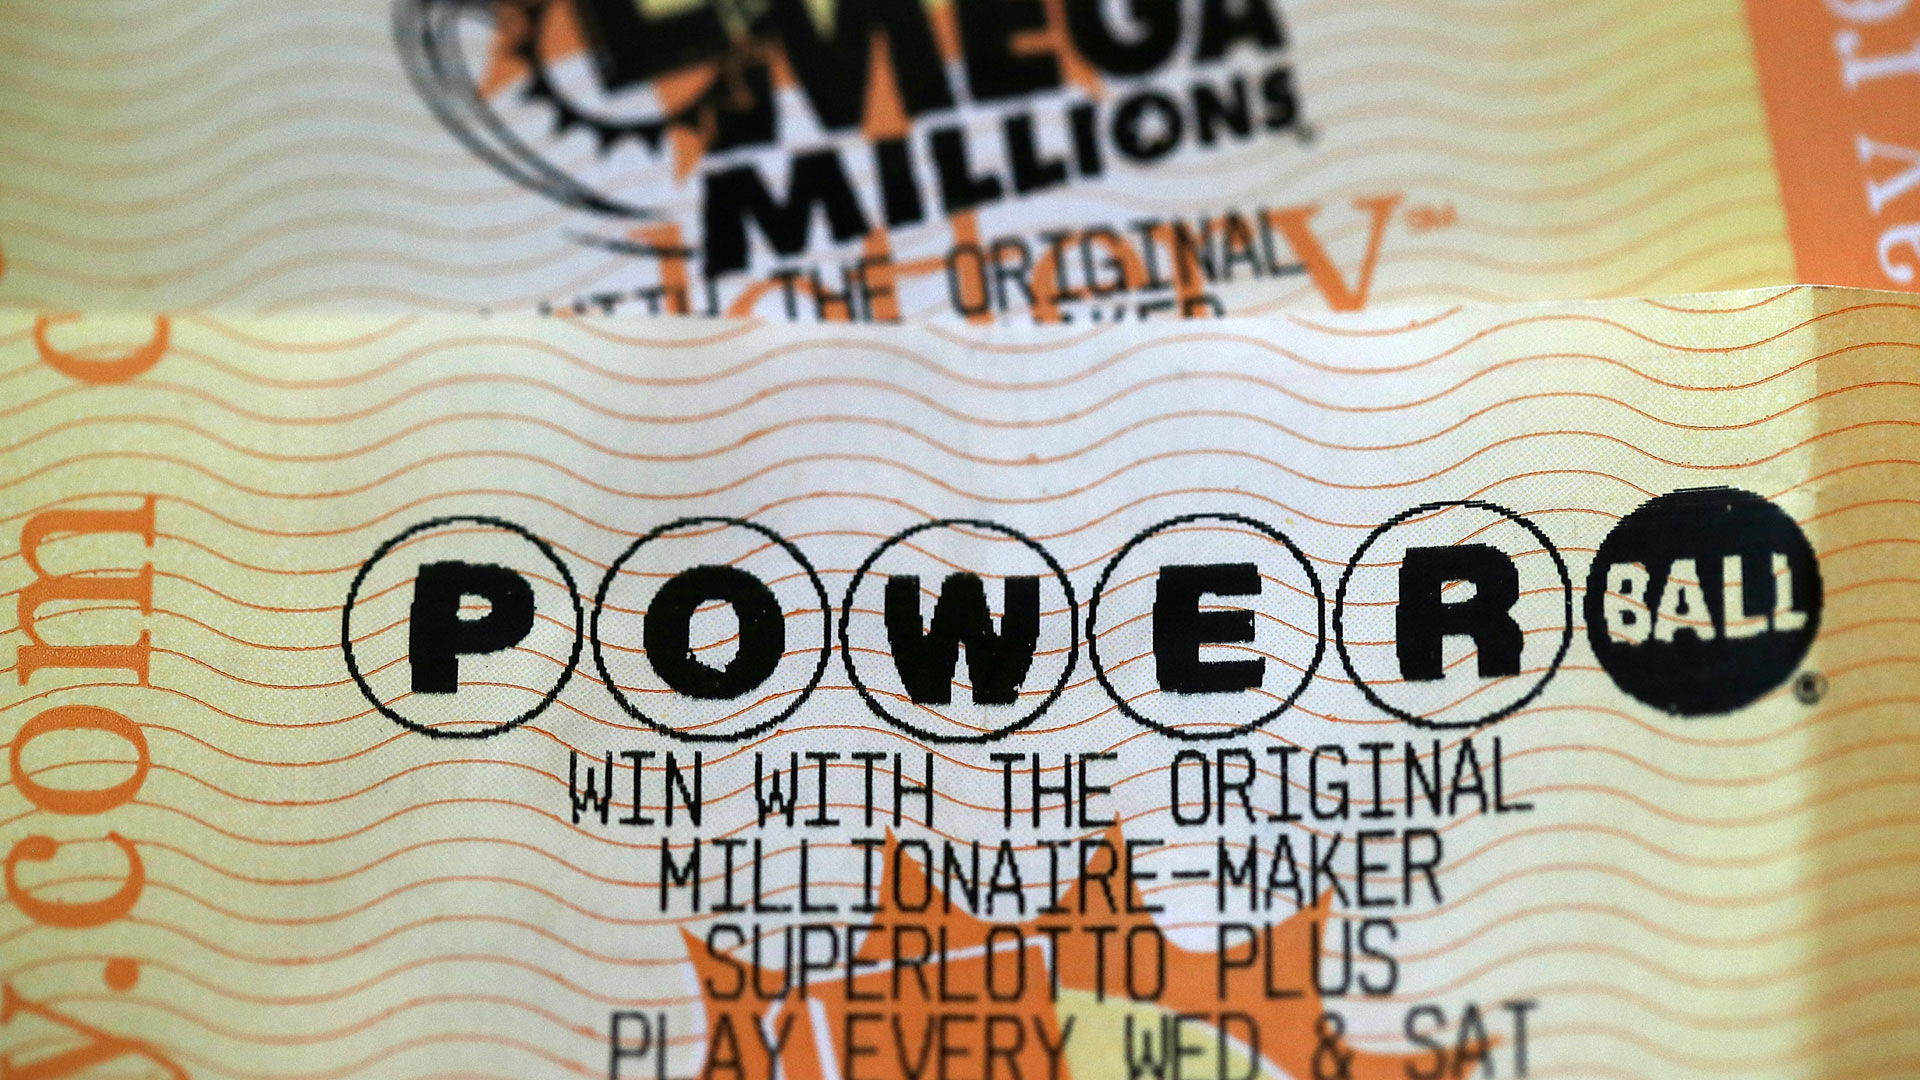 Here Are The Winning Numbers For The Powerball Jackpot Worth 550 Million